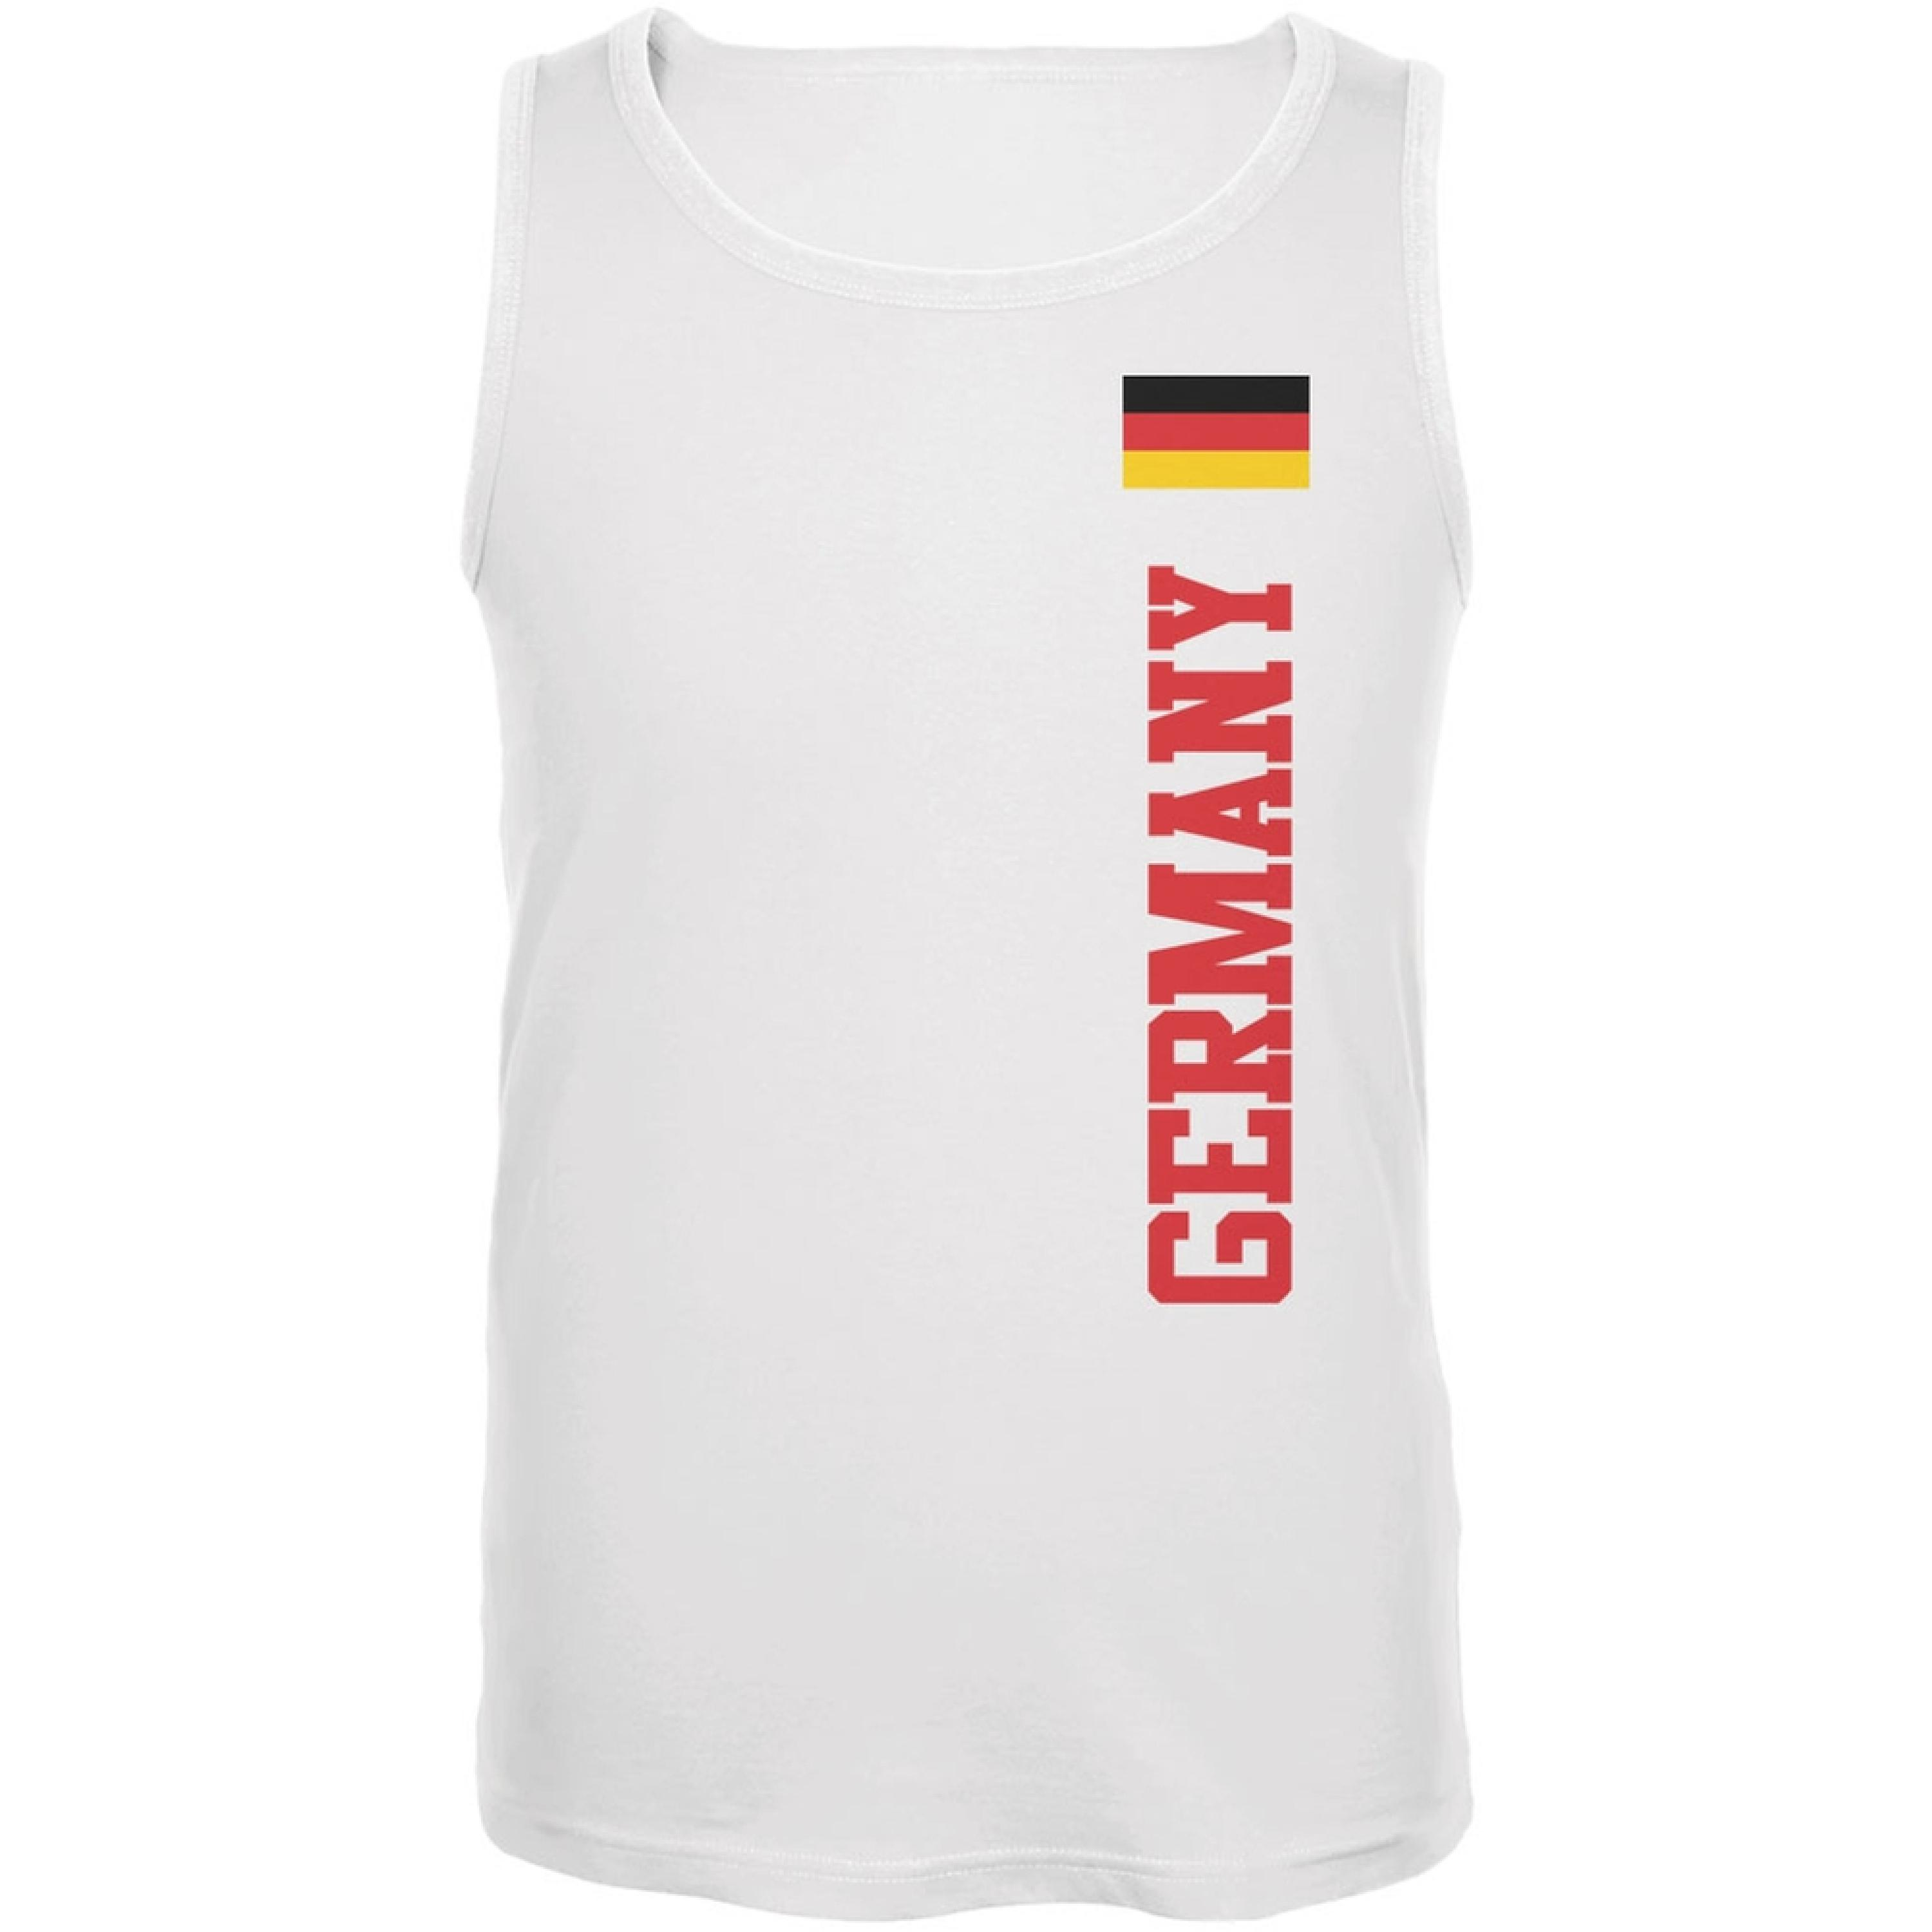 World Cup Germany White Adult Tank Top